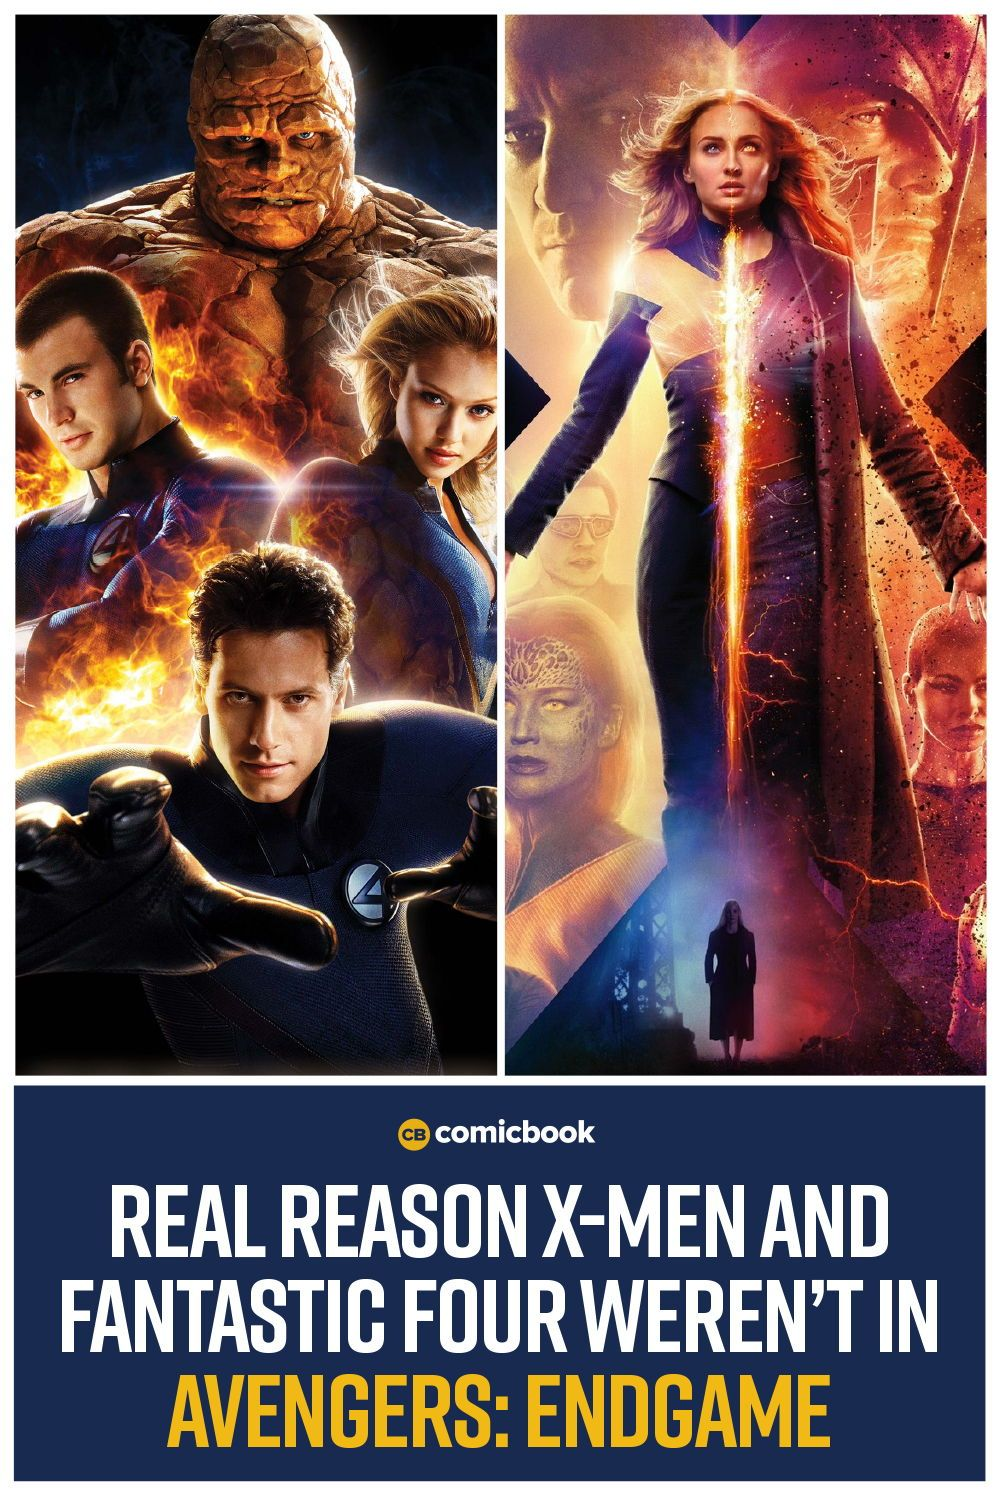 Real Reason X Men And Fantastic Four Weren T In Avengers Endgame Revealed Avengers Fantastic Four Good Movies To Watch